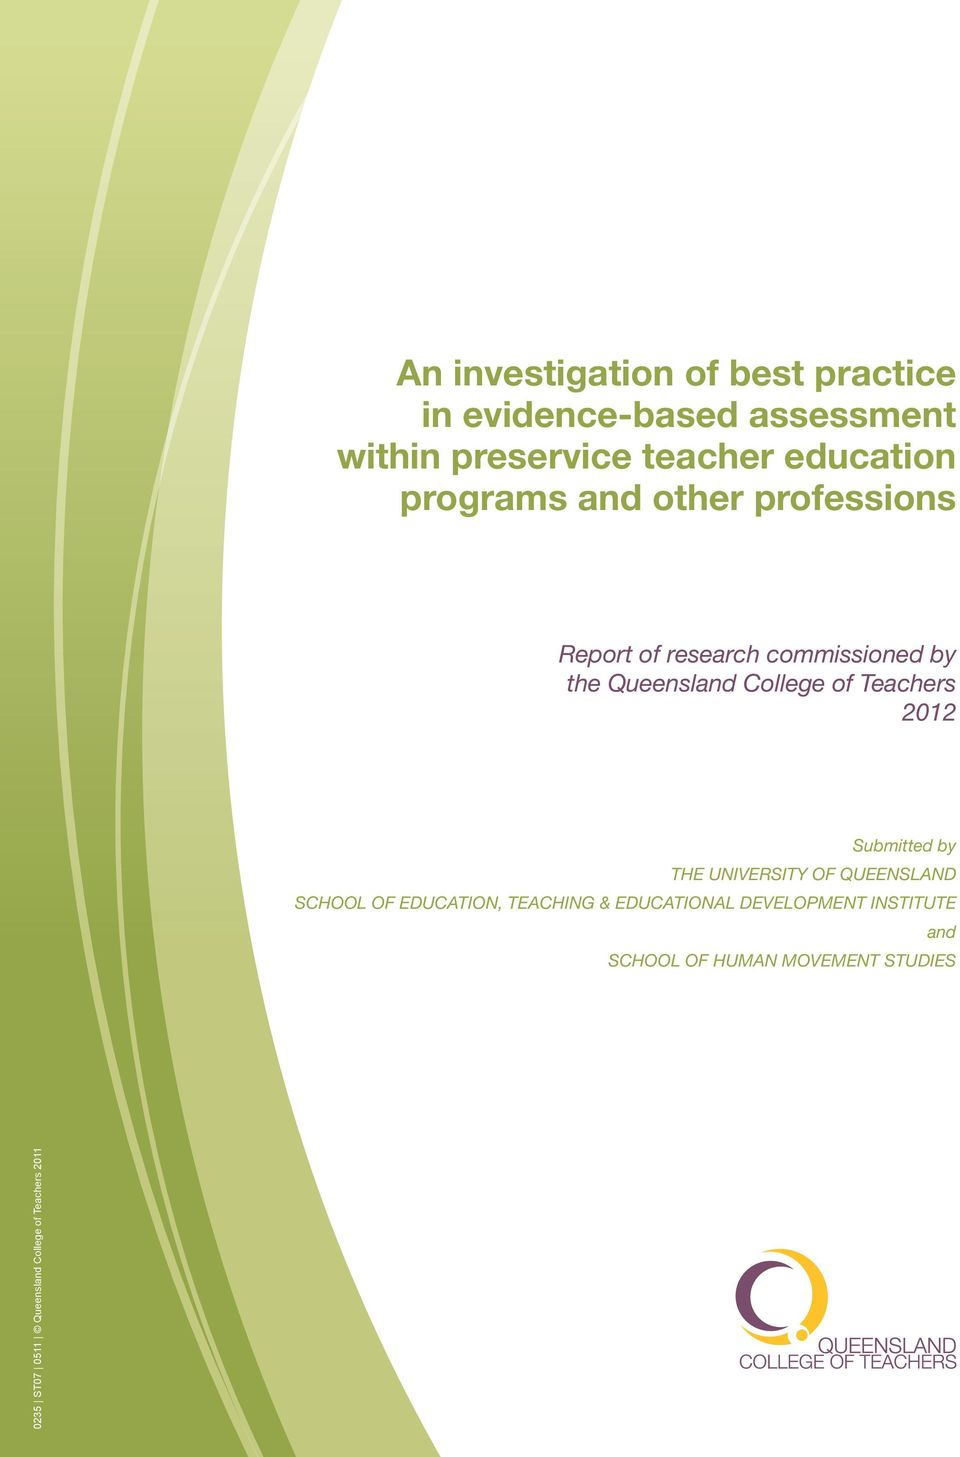 Teachers 2012 Submitted by THE UNIVERSITY OF QUEENSLAND SCHOOL OF EDUCATION, TEACHING & EDUCATIONAL